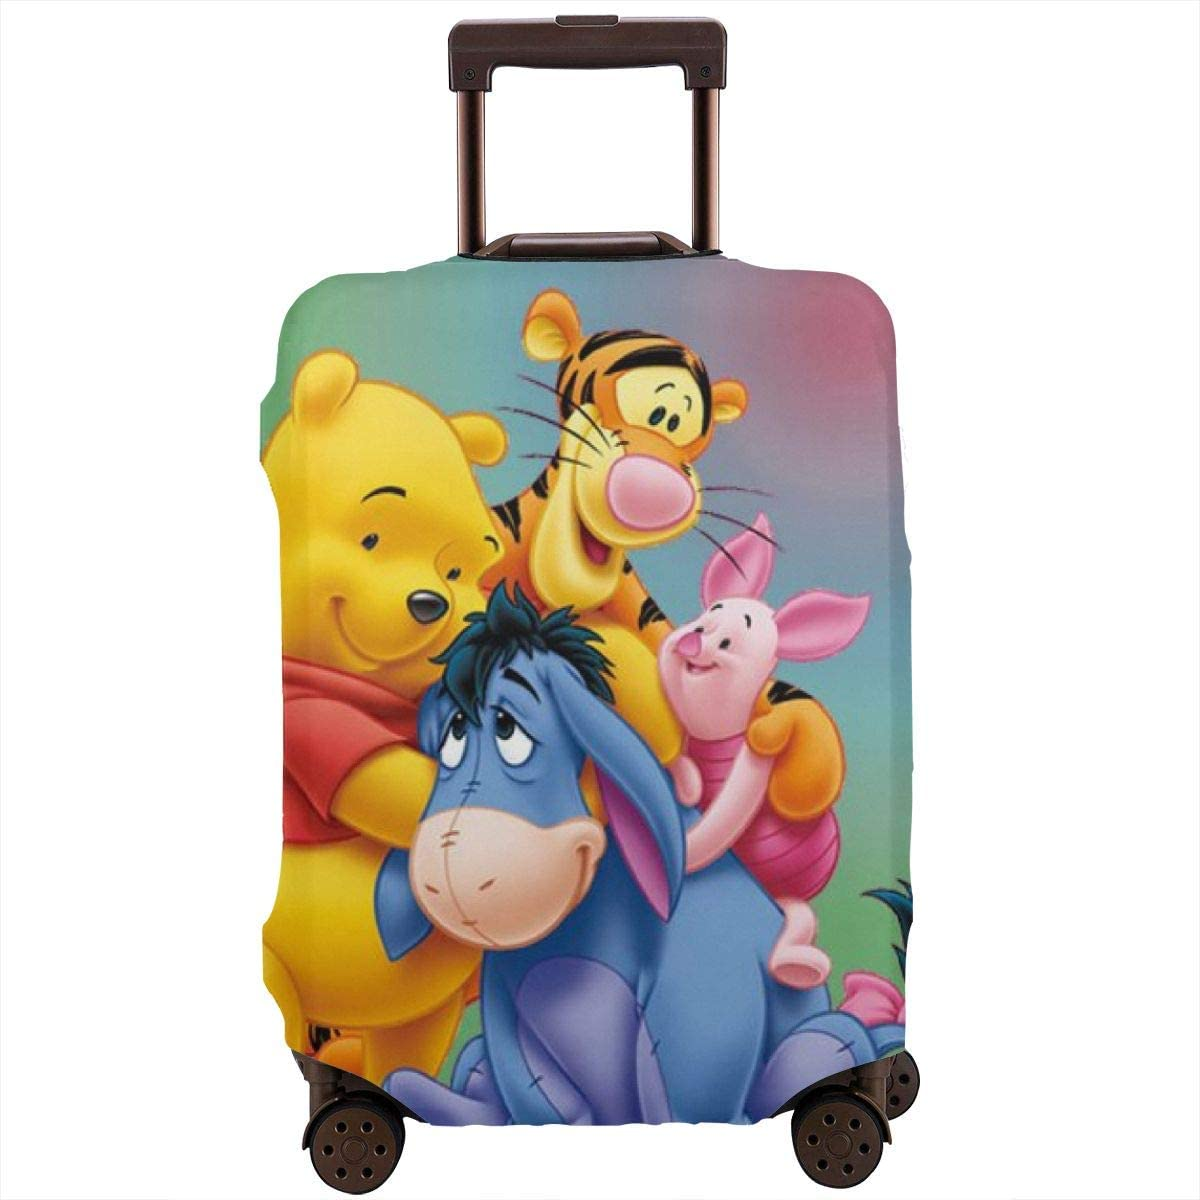 Travel Luggage Cover Excellent Winnie The Protec Friends And Denver Mall Pooh Suitcase